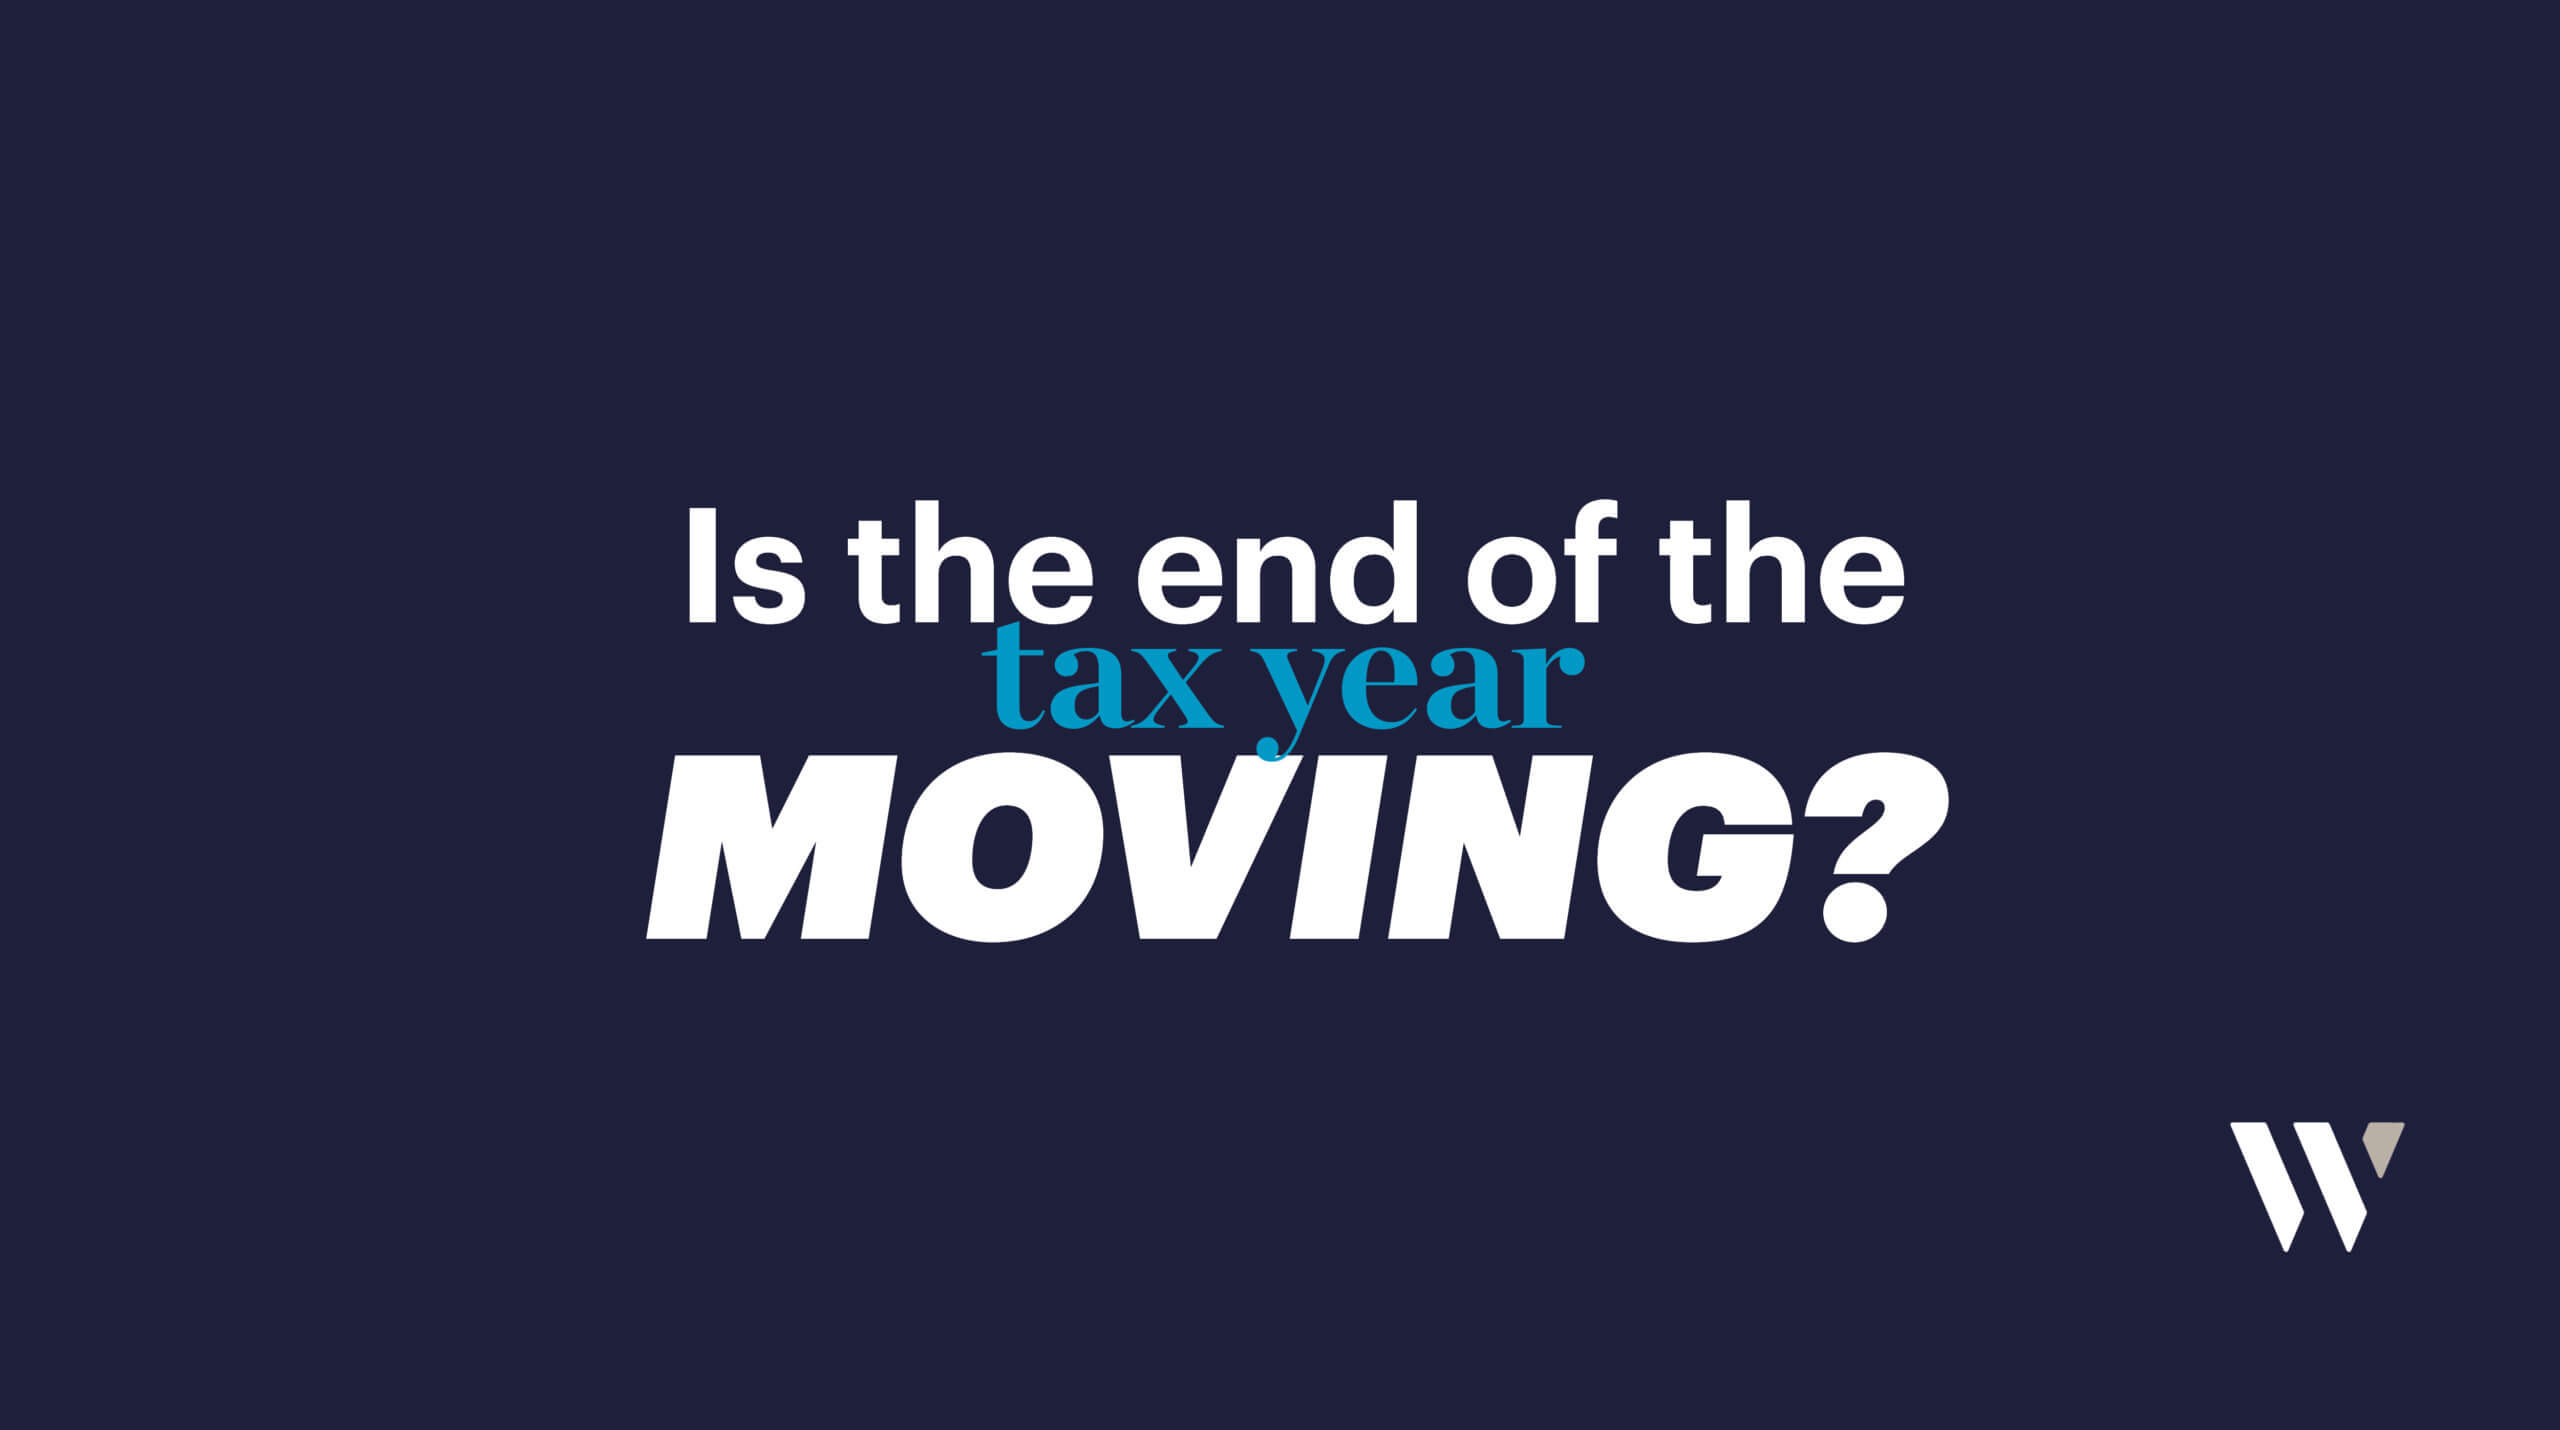 Is the end of the tax year being moved